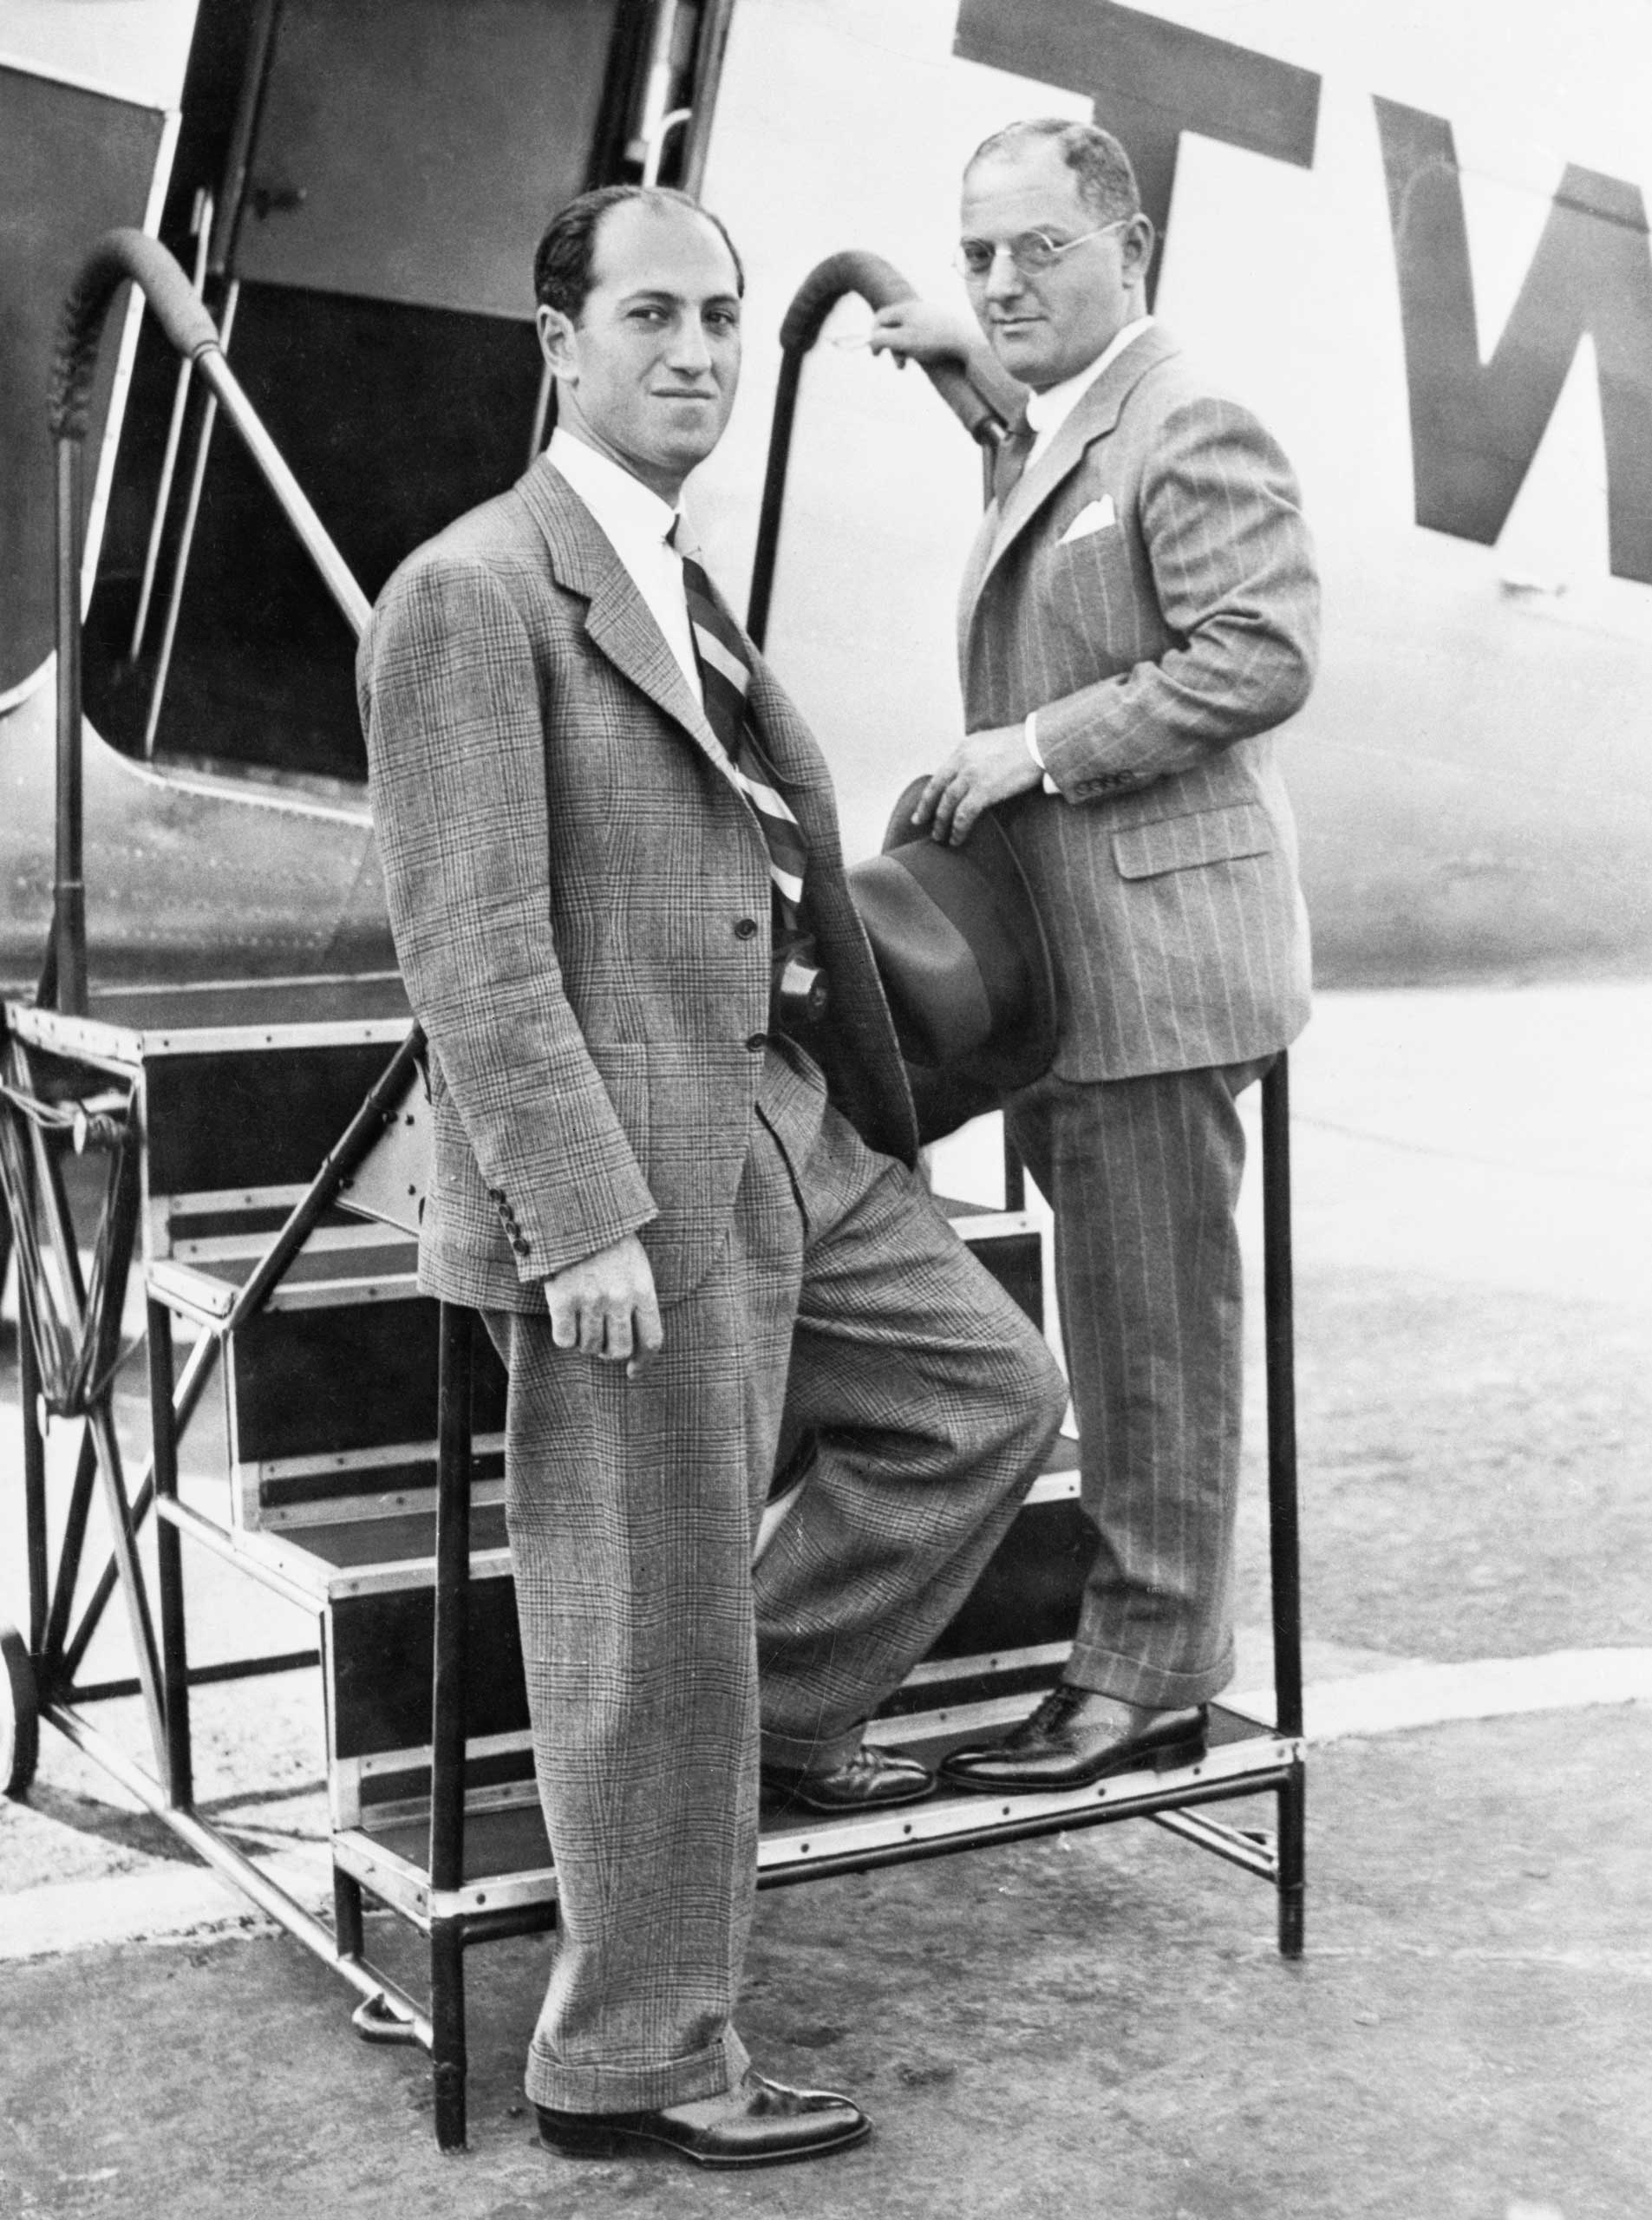 THE GERSHWINS: Older brother Ira wrote the lyrics, while George composed the music. Together, they created more than 700 popular songs.